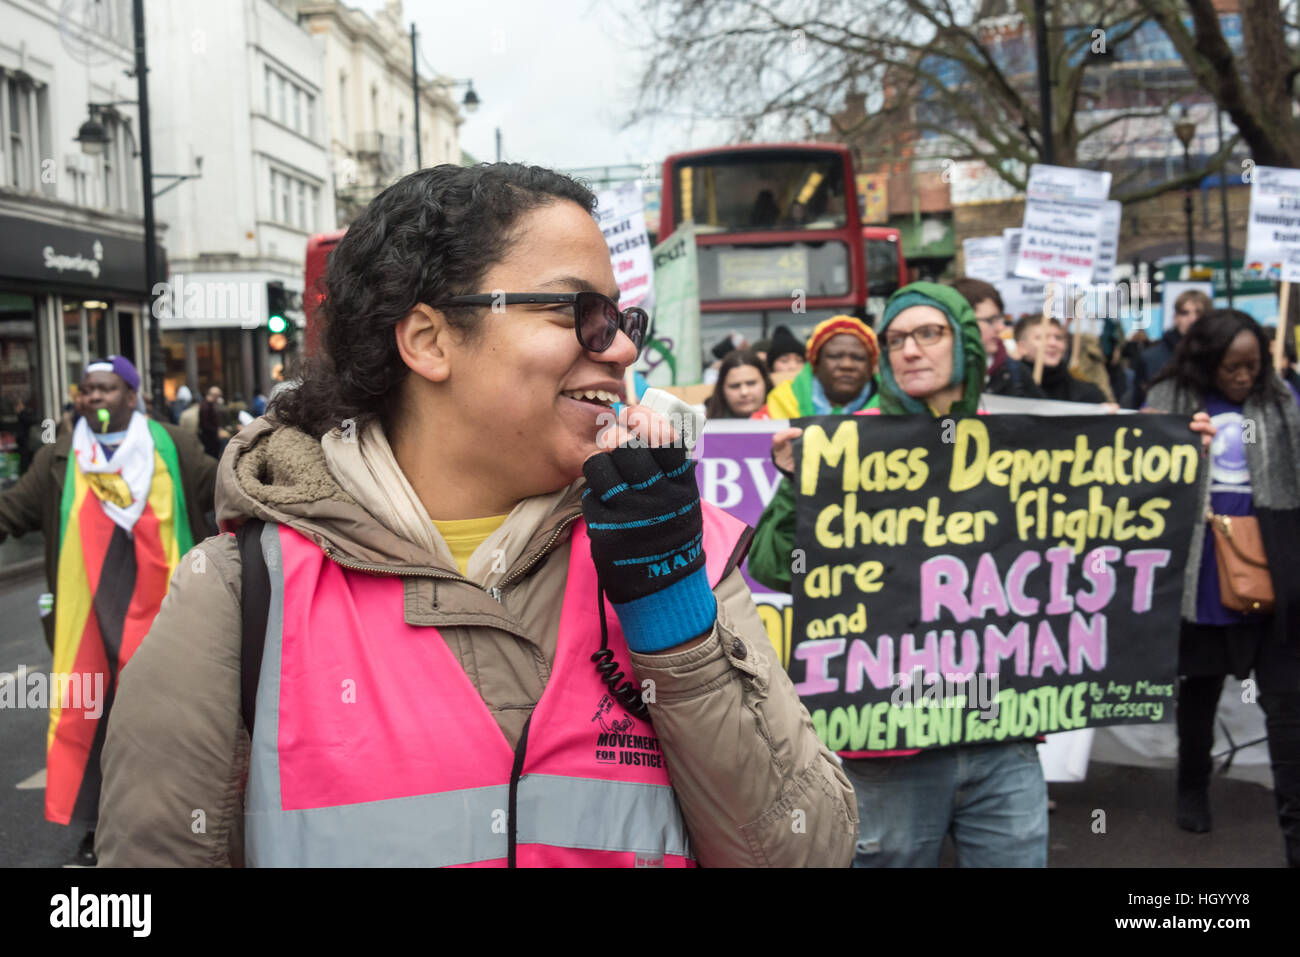 London, UK. 14th January 2017. Antonia Bright at the front of the Movement for Justice march through Brixton communities - Stock Image